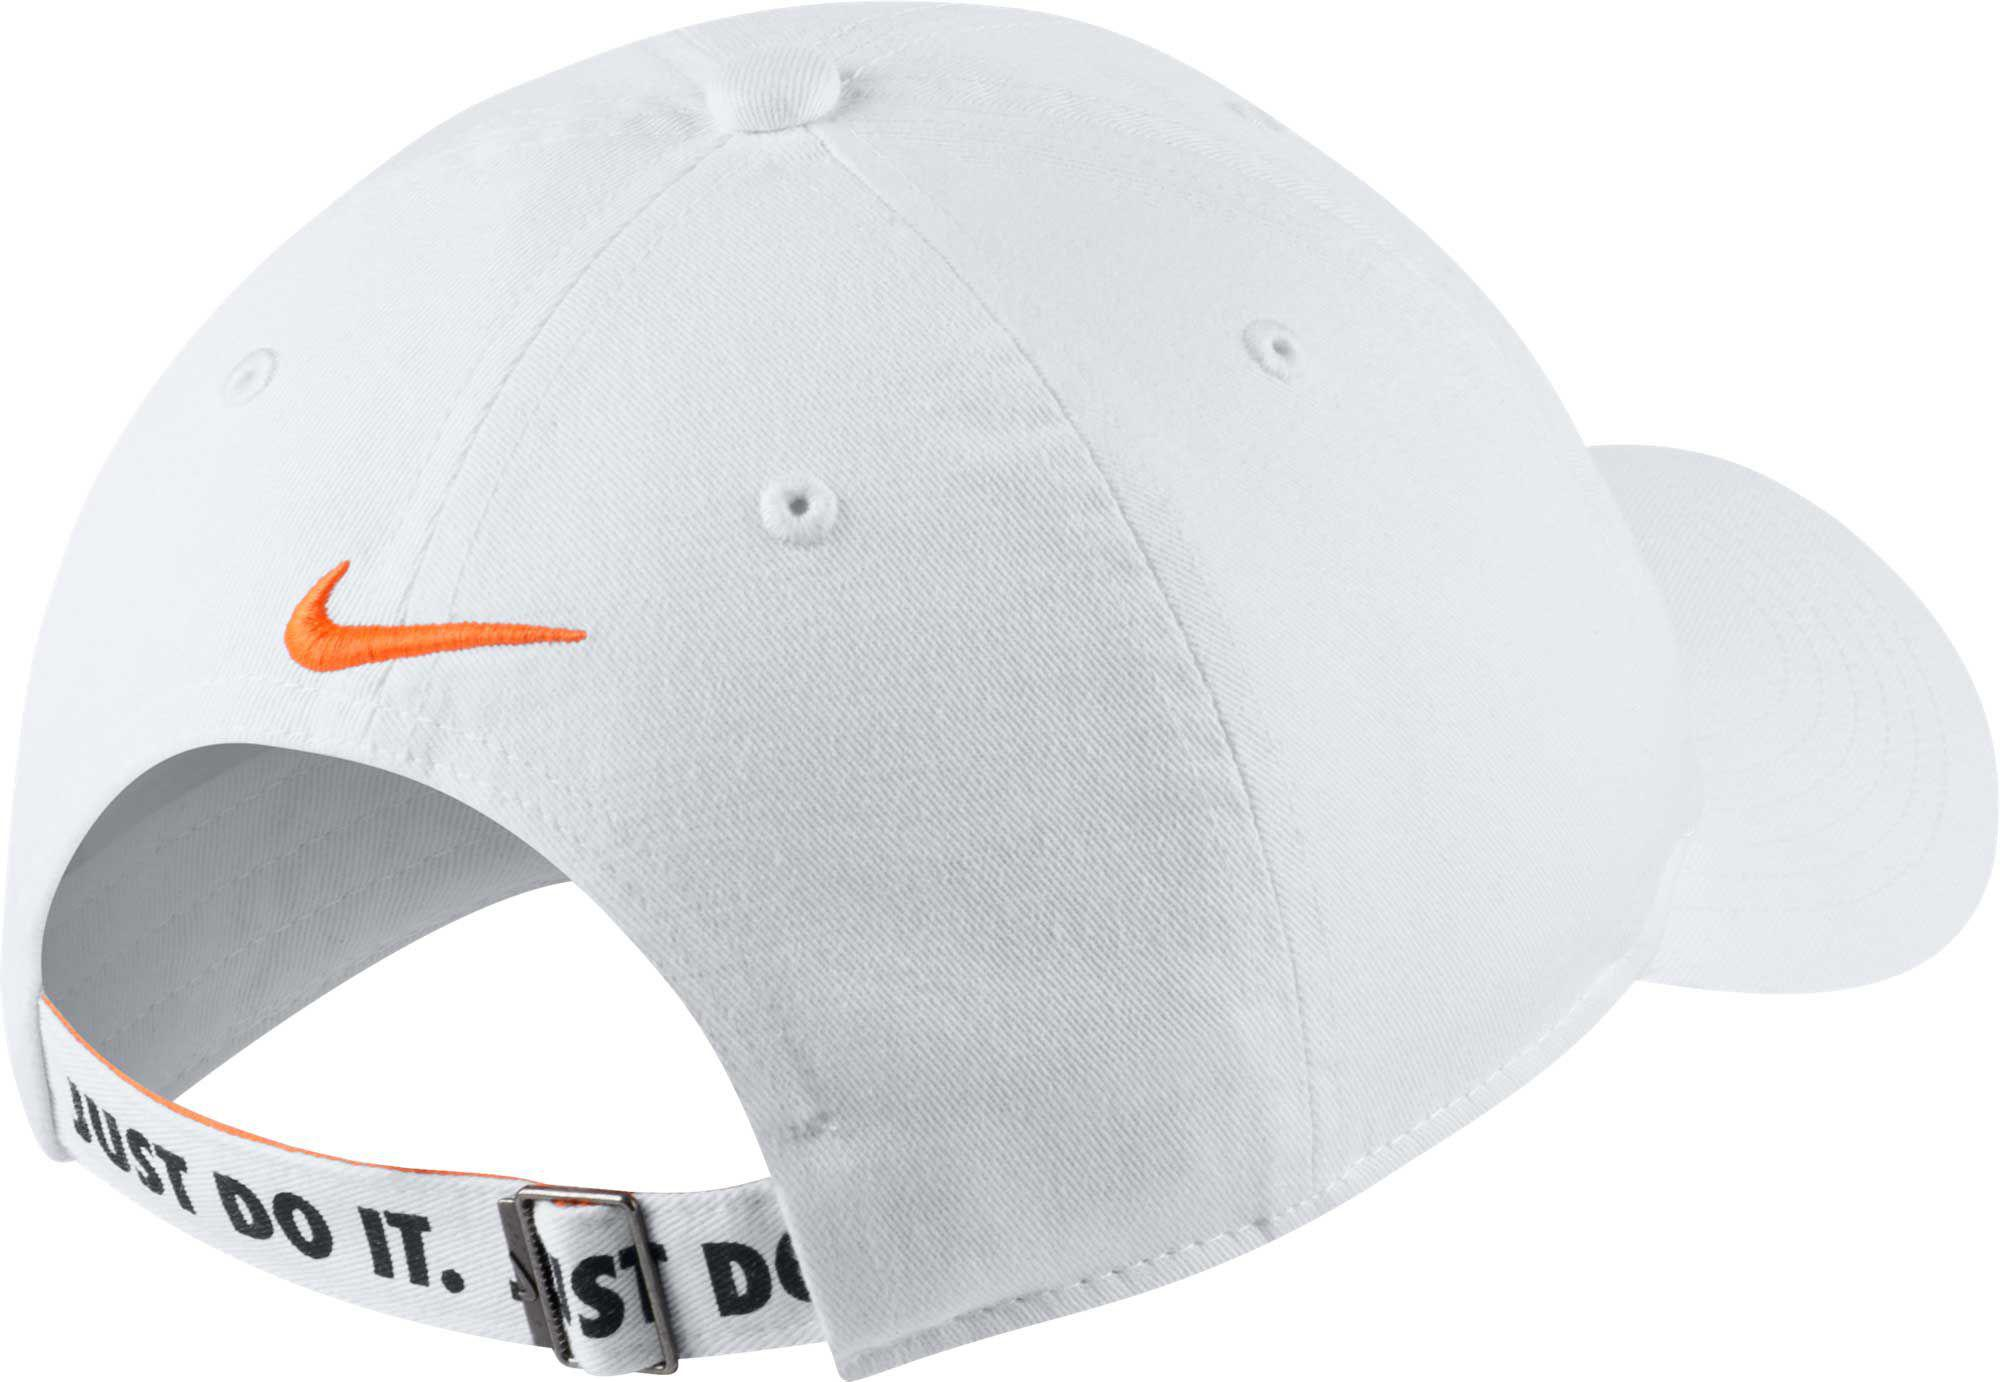 Lyst - Nike Oys  Heritage86 Shoebox Adjustable Hat in White for Men f9db201ee92